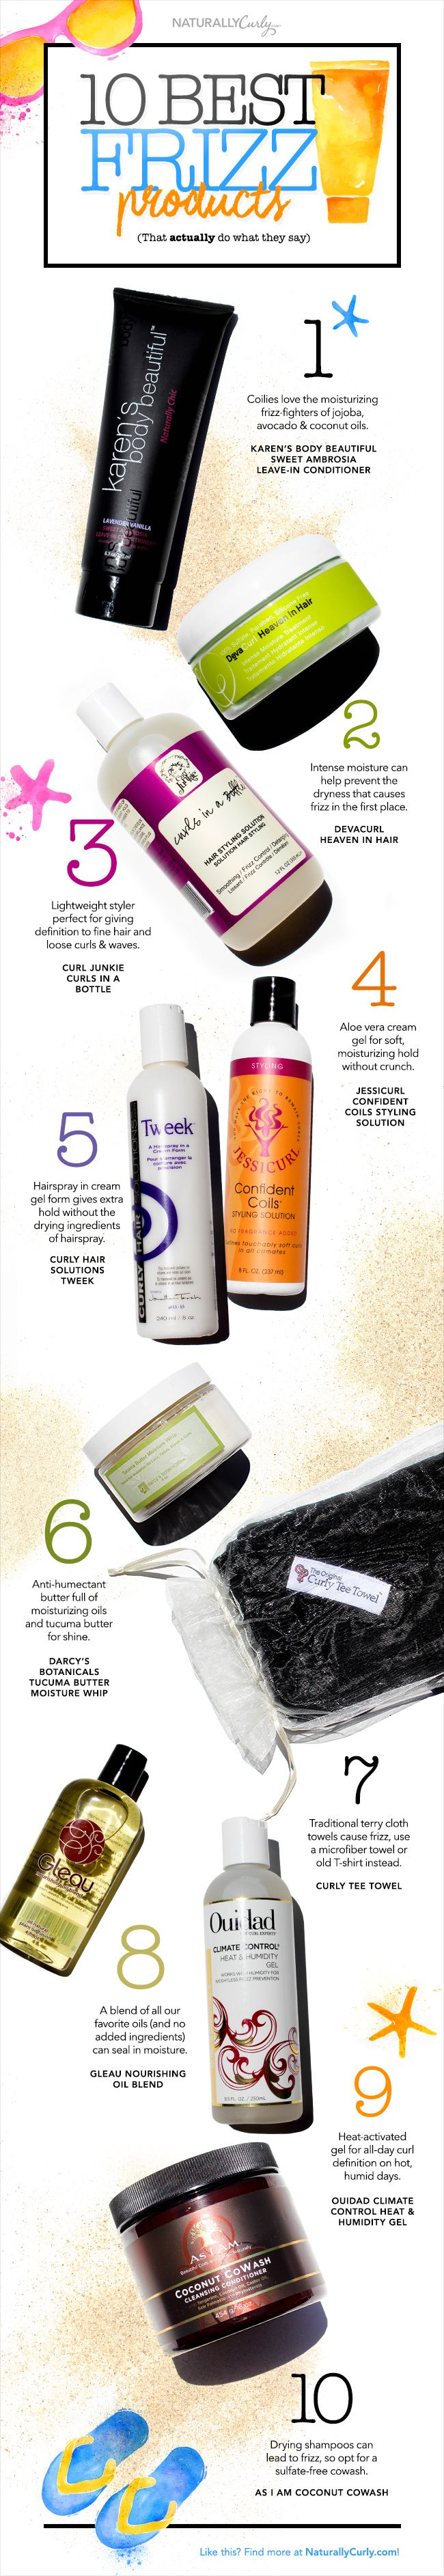 10-frizz-fighting products. Karen's body beautiful in pomegranate guava smells AMAZING! You can purchase at target.